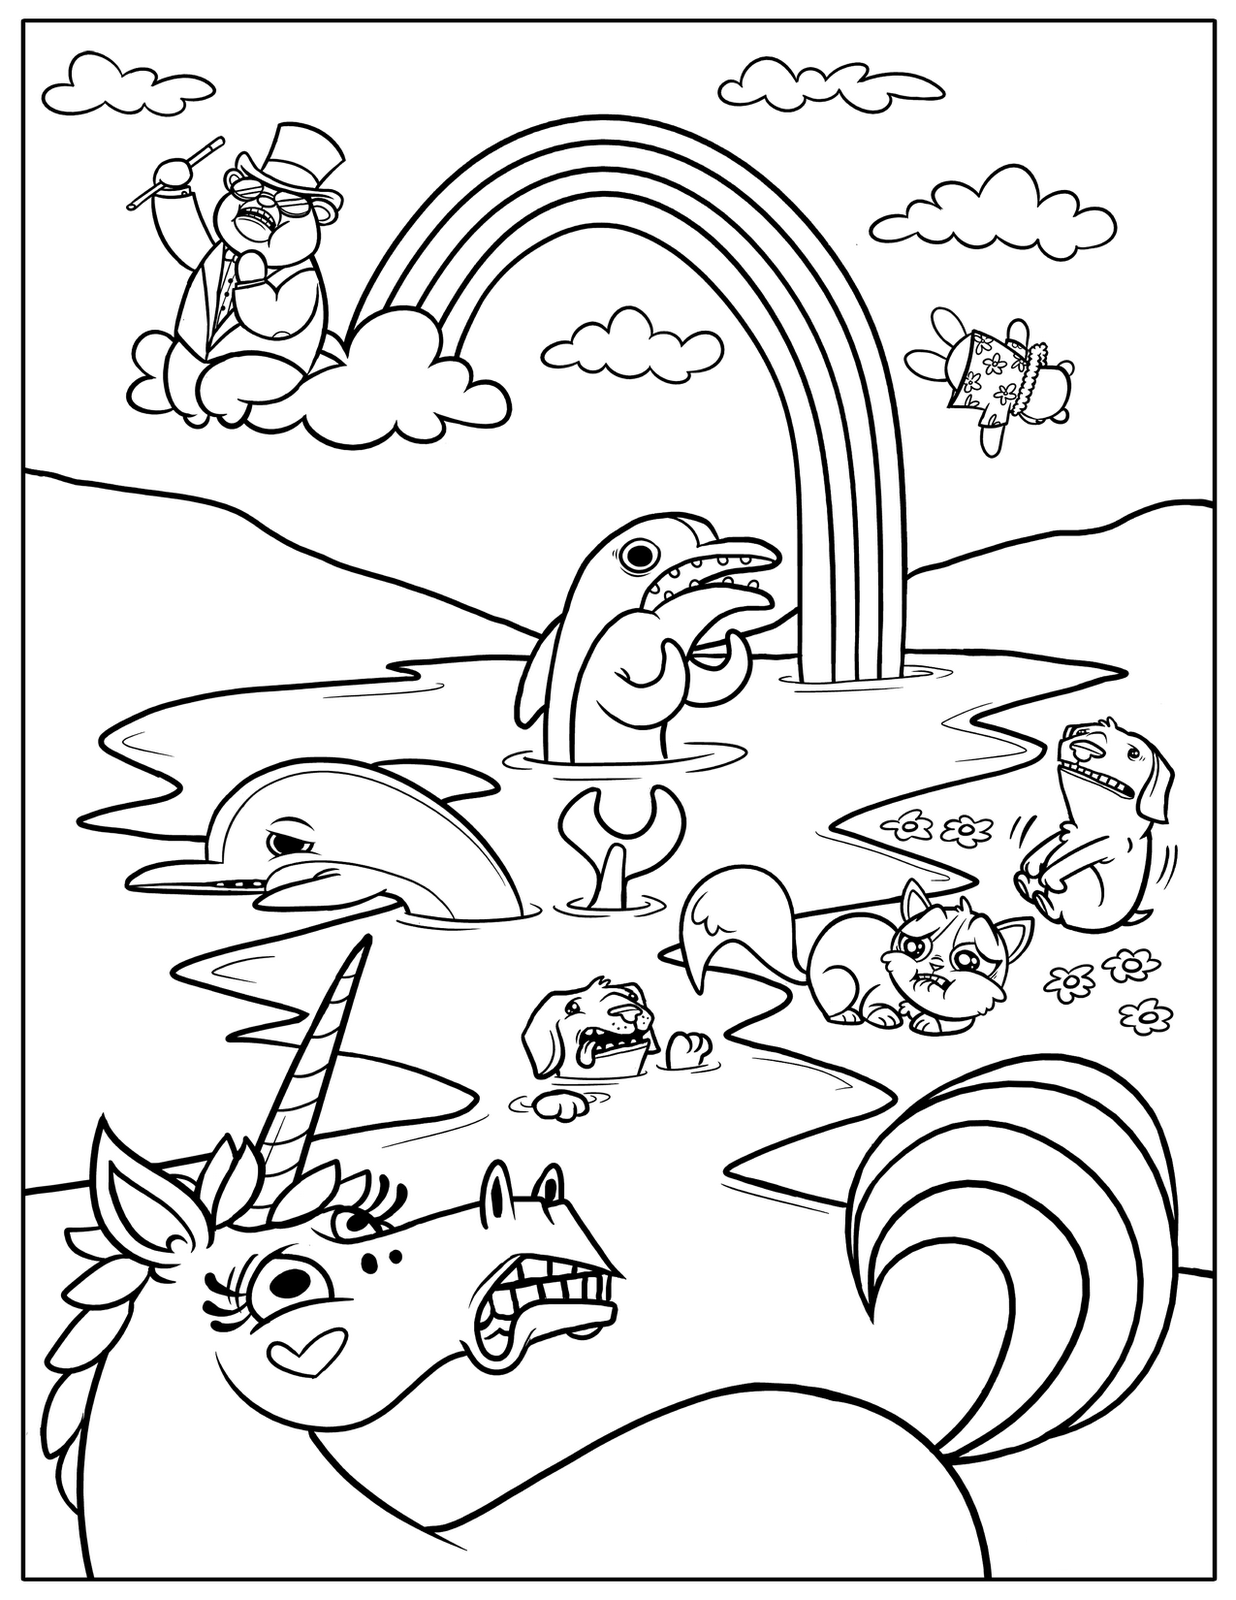 coloring sheet things to color free printable tangled coloring pages for kids things coloring sheet color to